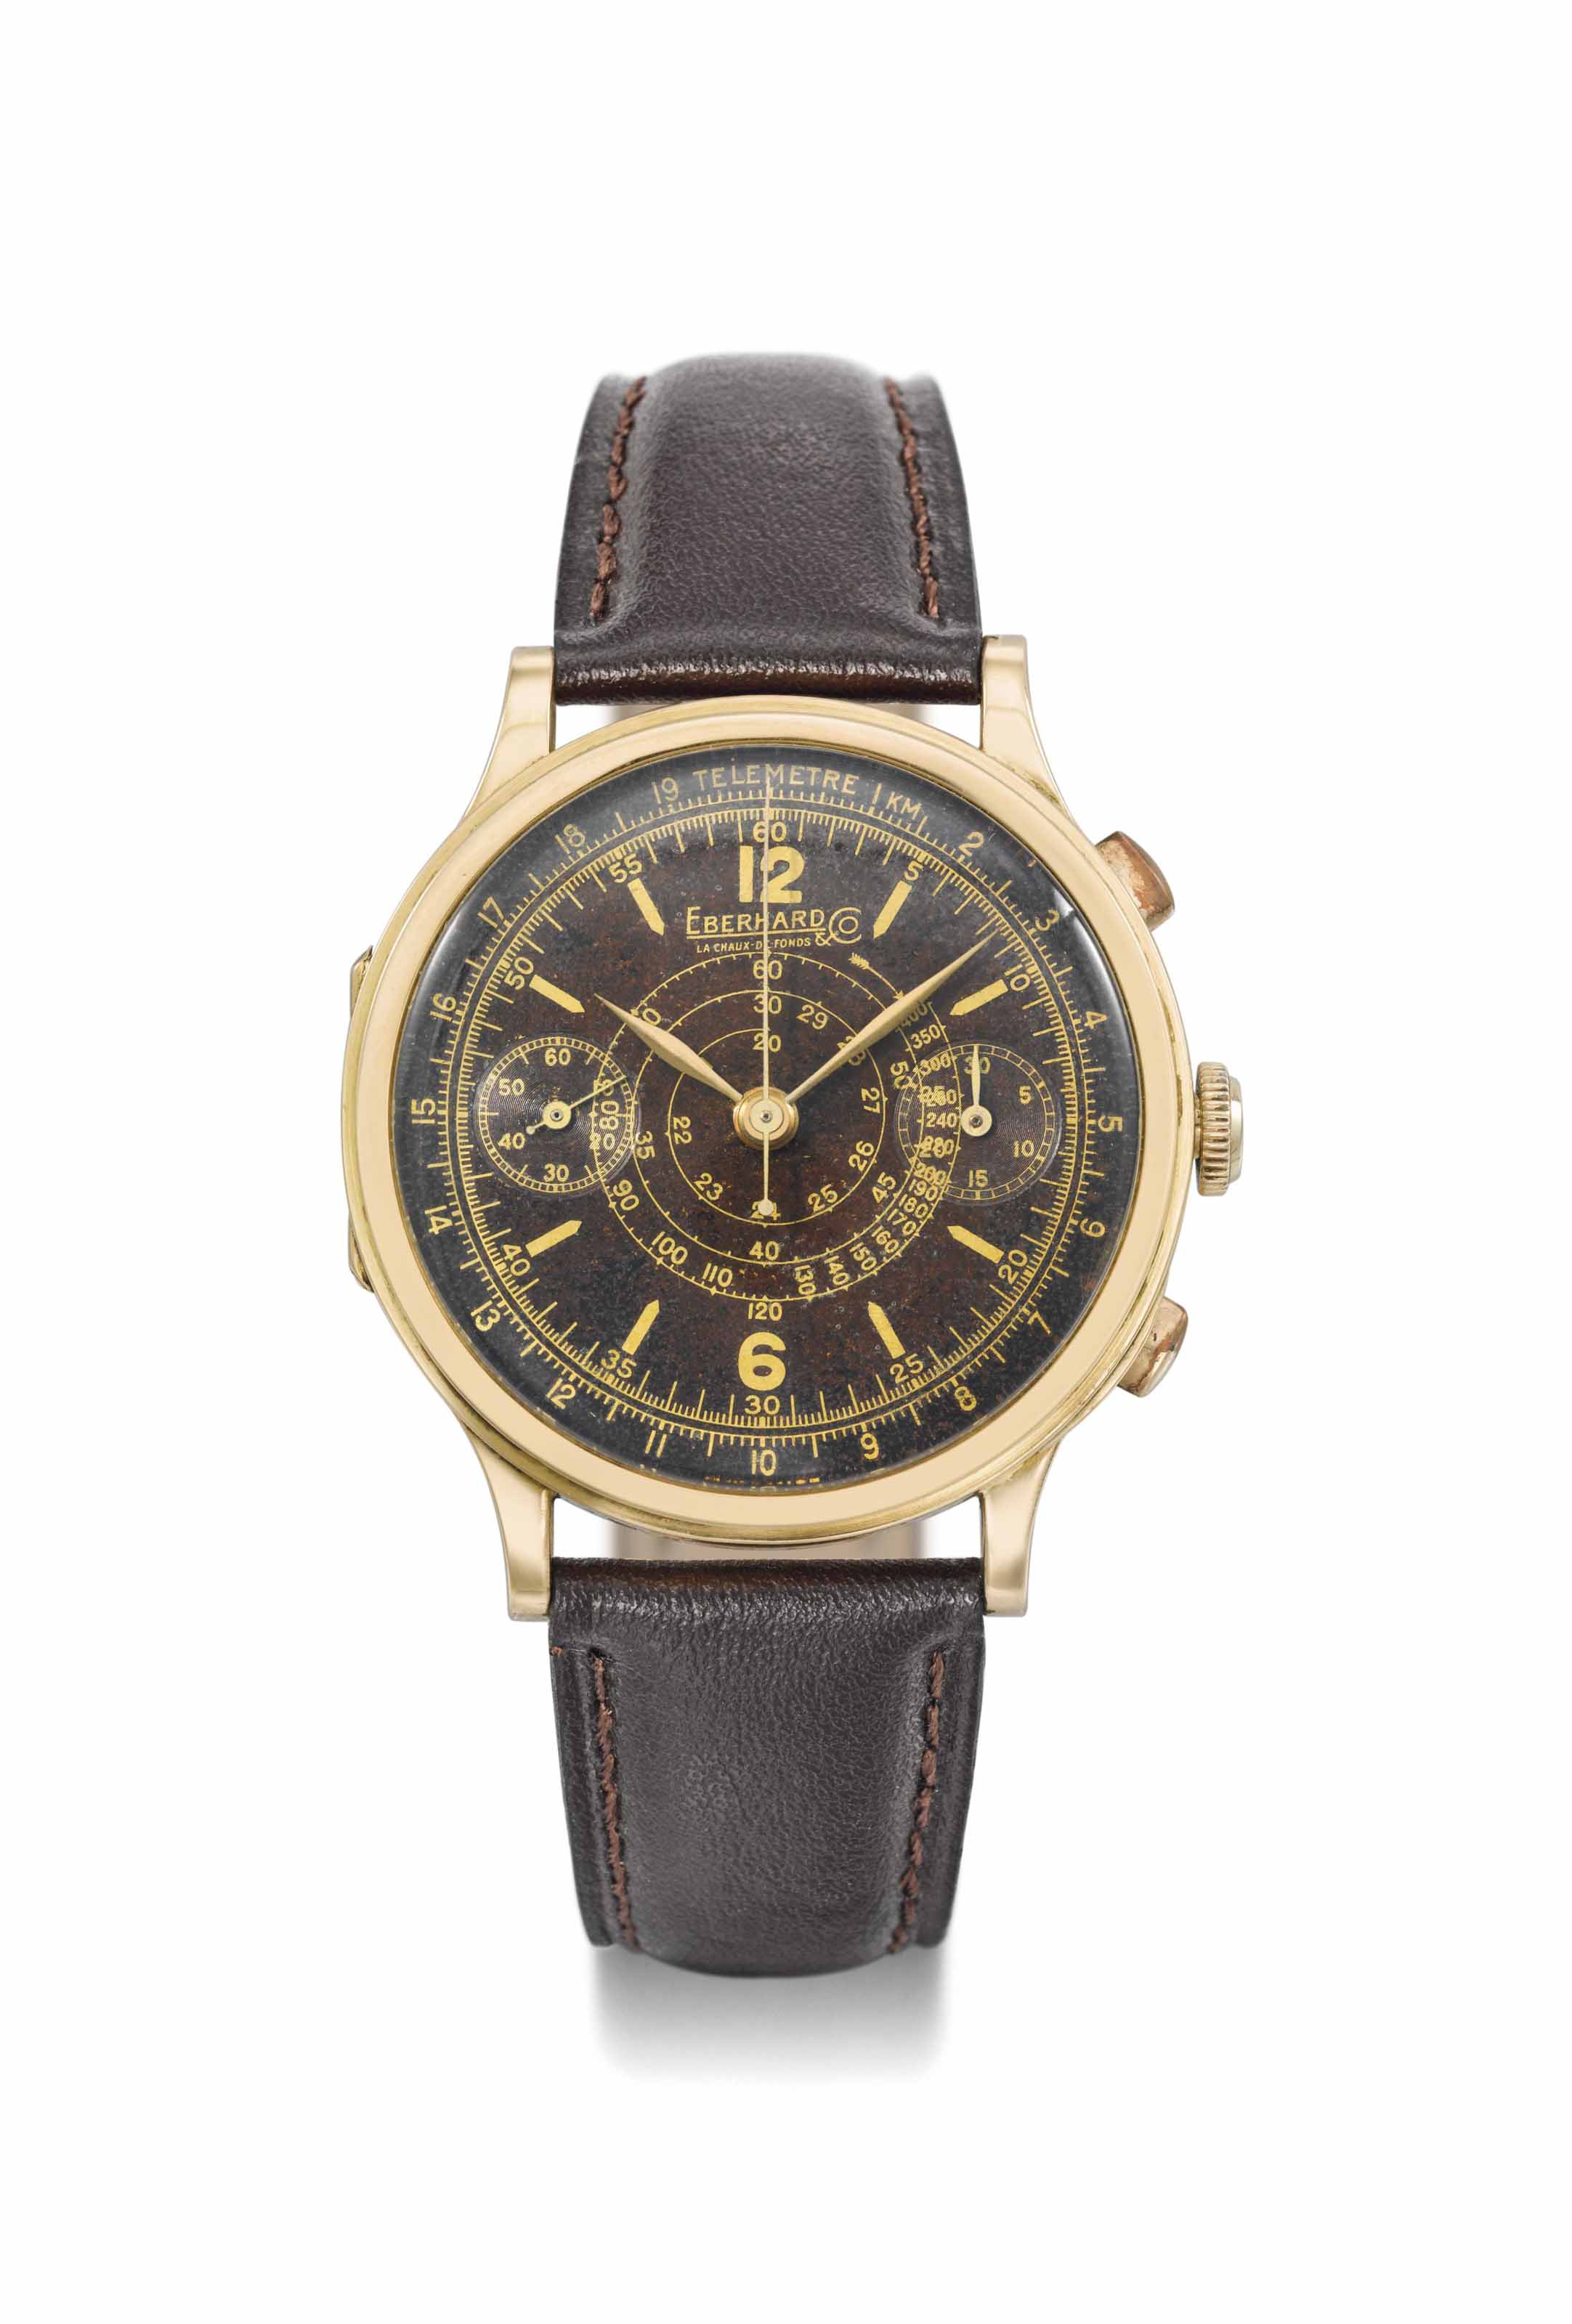 Eberhard & Co. A large, very a